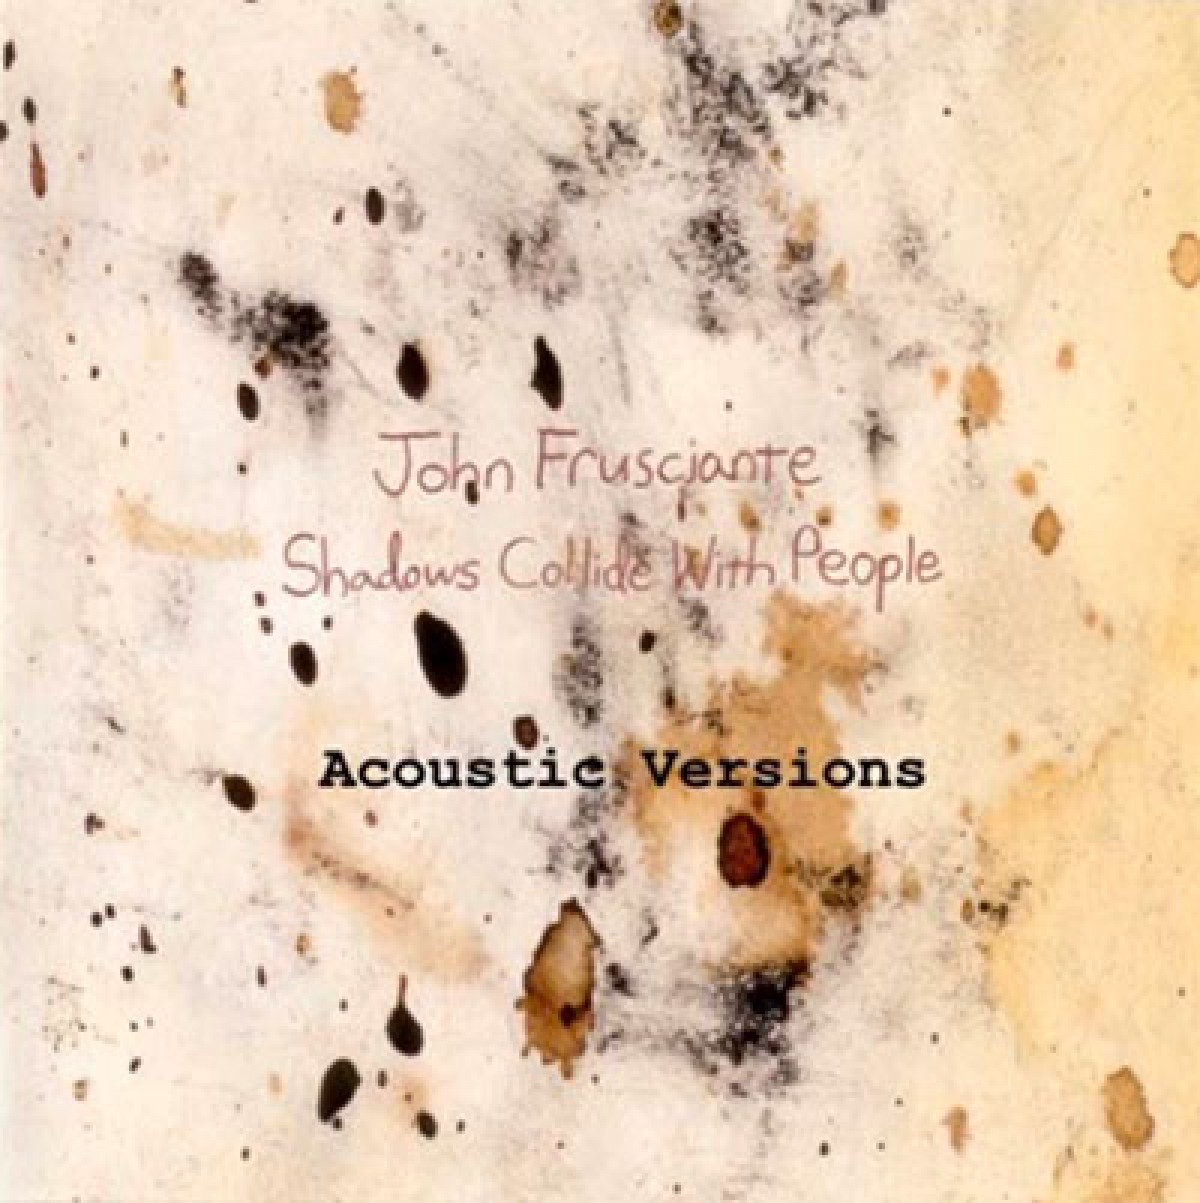 Shadows Collide With People - Acoustic